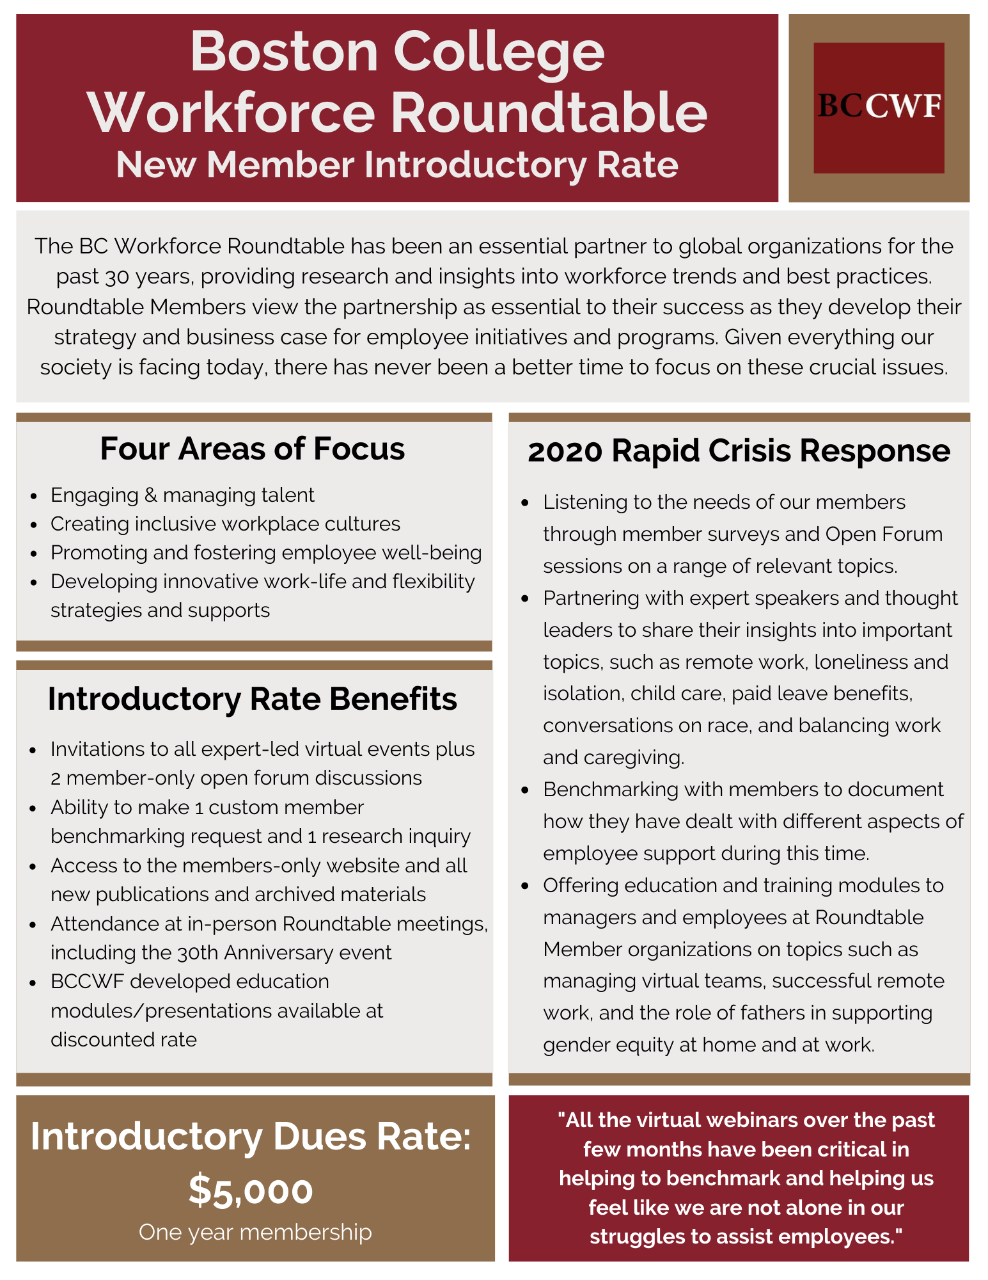 New Member Introductory Rate